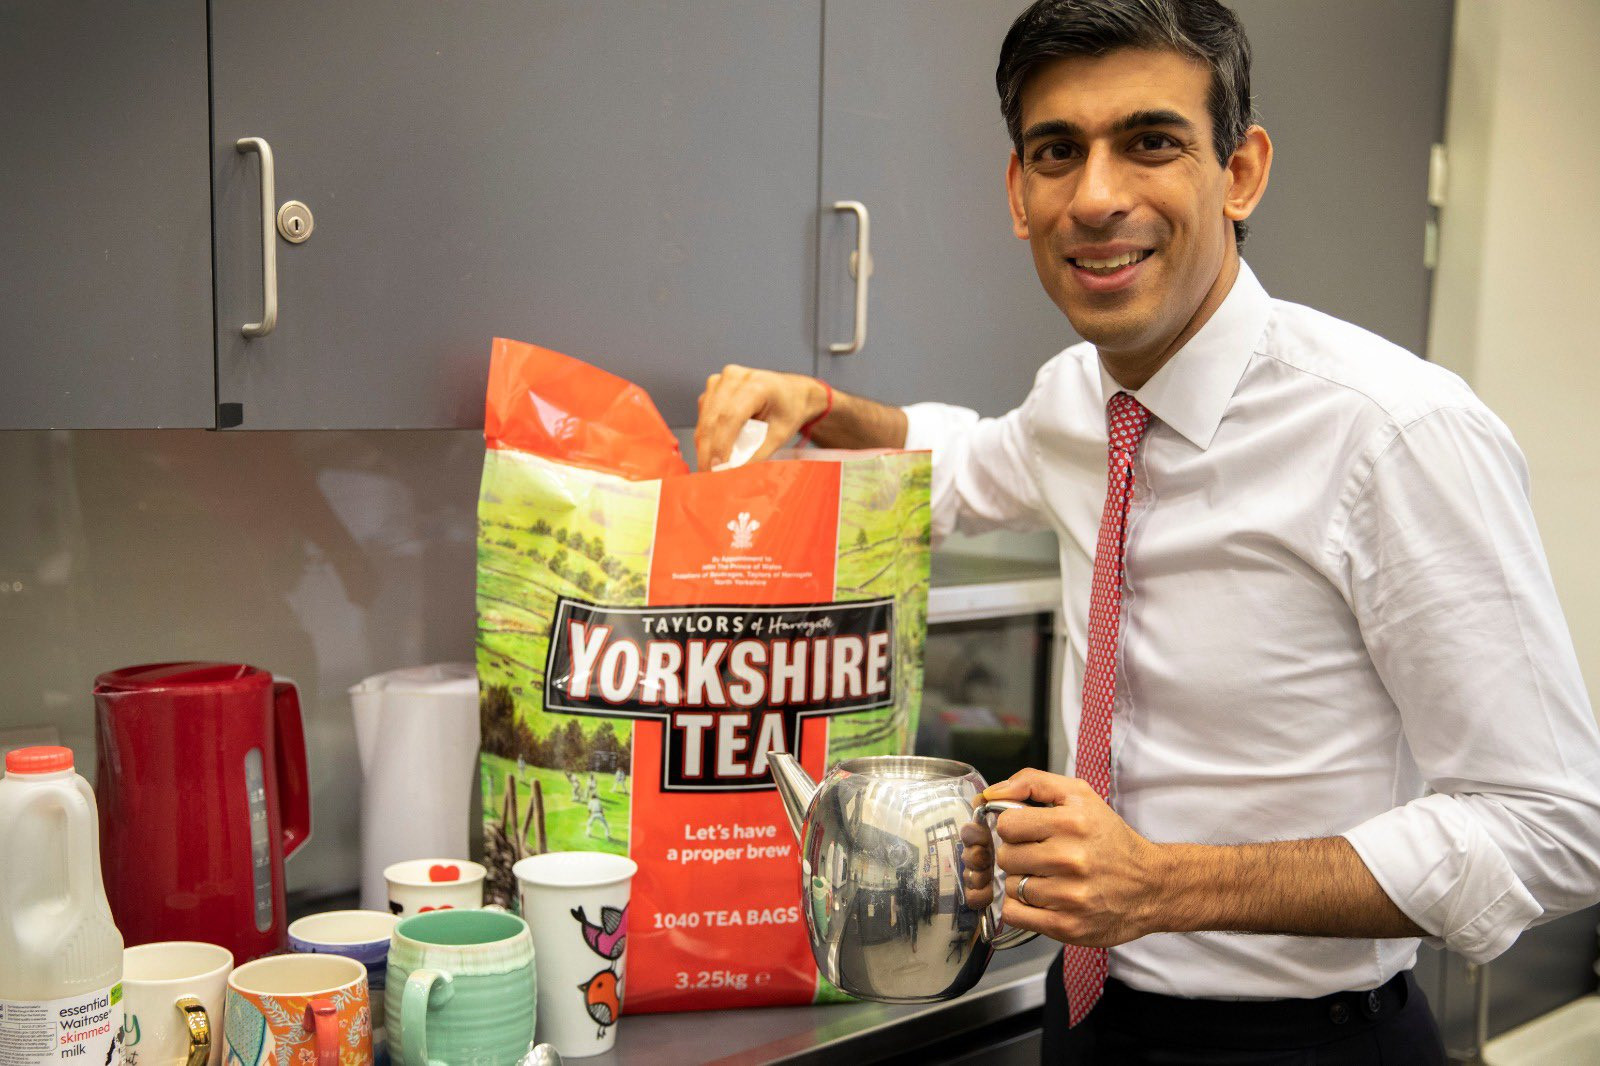 Storm in Yorkshire Tea cup prompts message from Plymouth MP